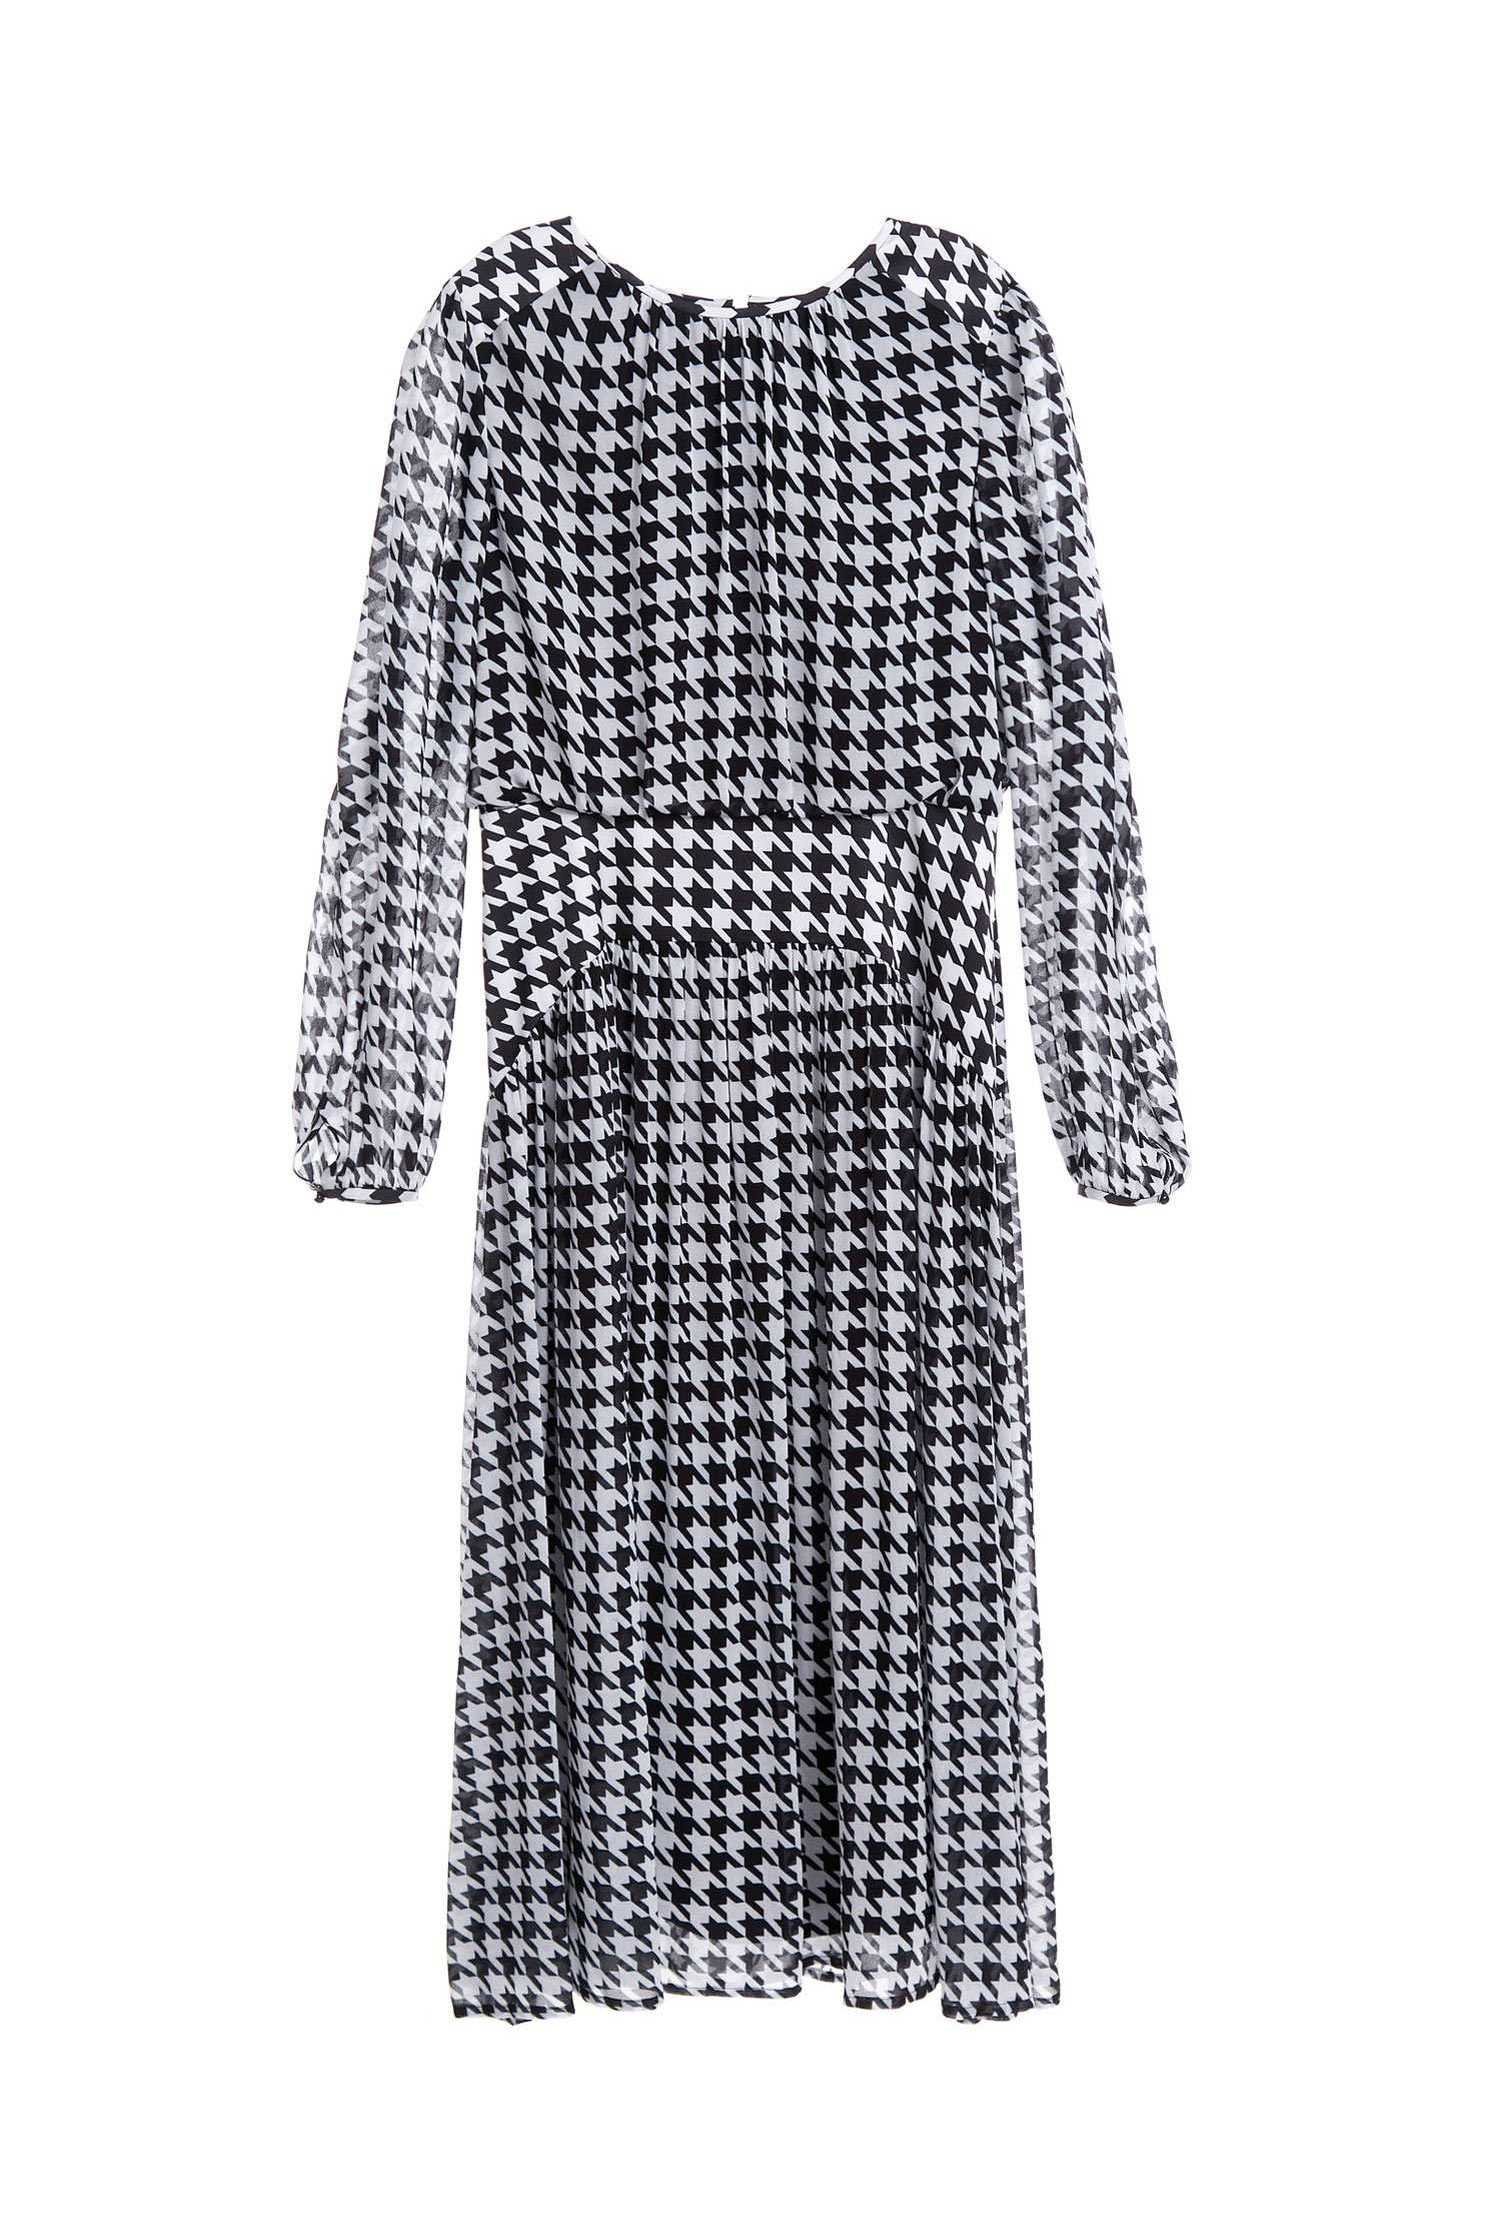 Houndstooth mixing dress